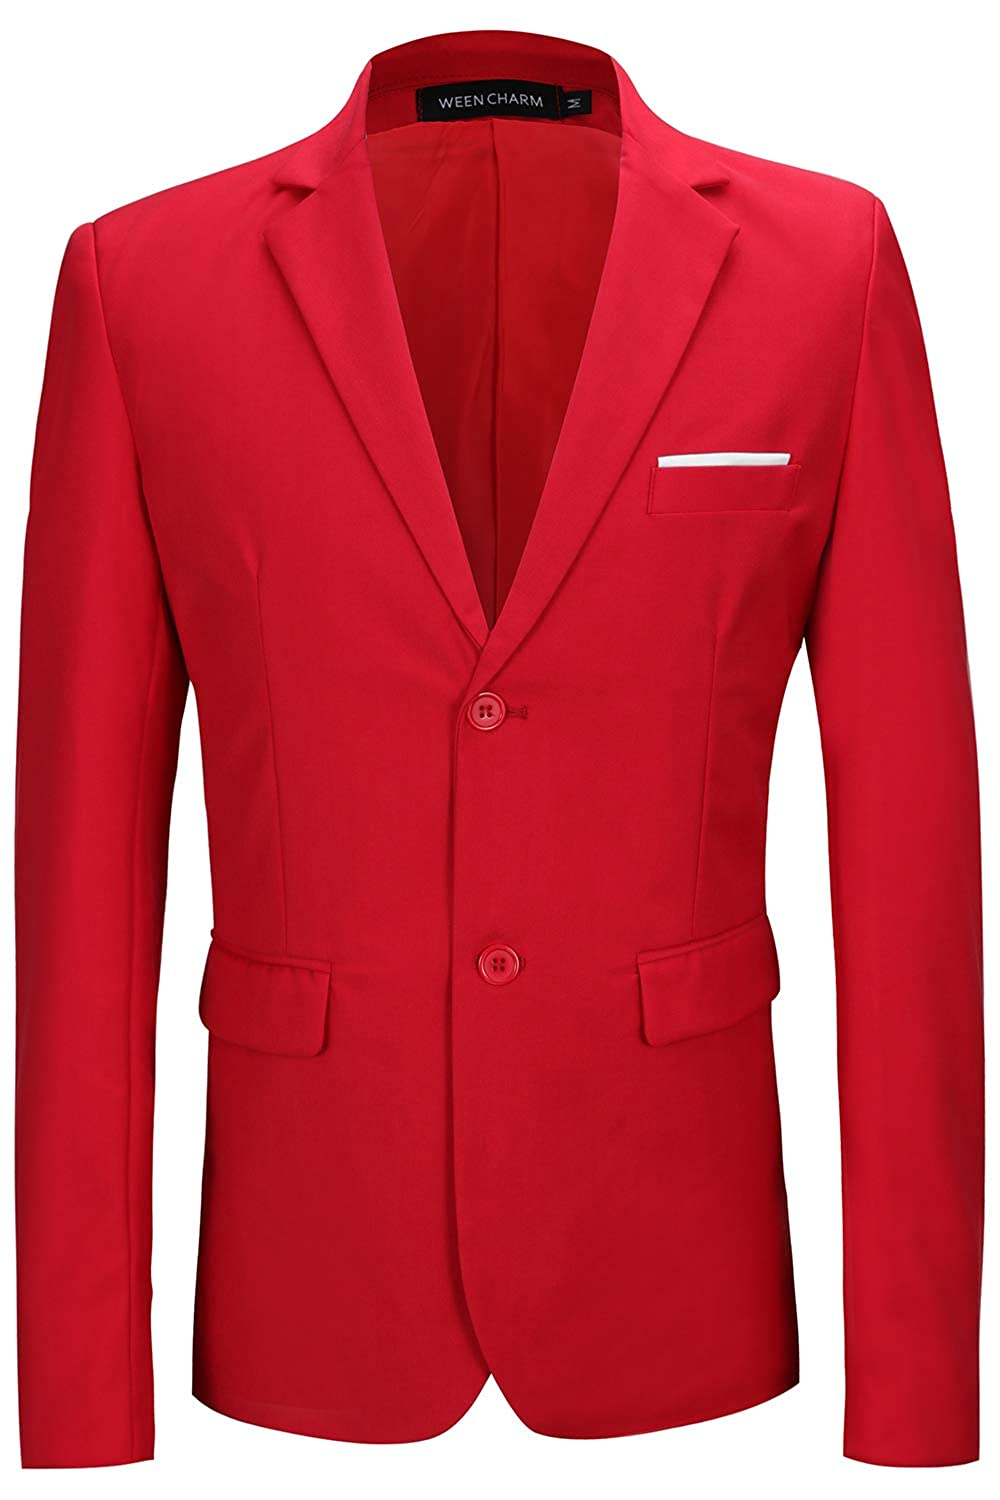 WEEN CHARM Mens Blazer Jacket Slim Fit Casual Two Button Solid Suit Separate Jacket